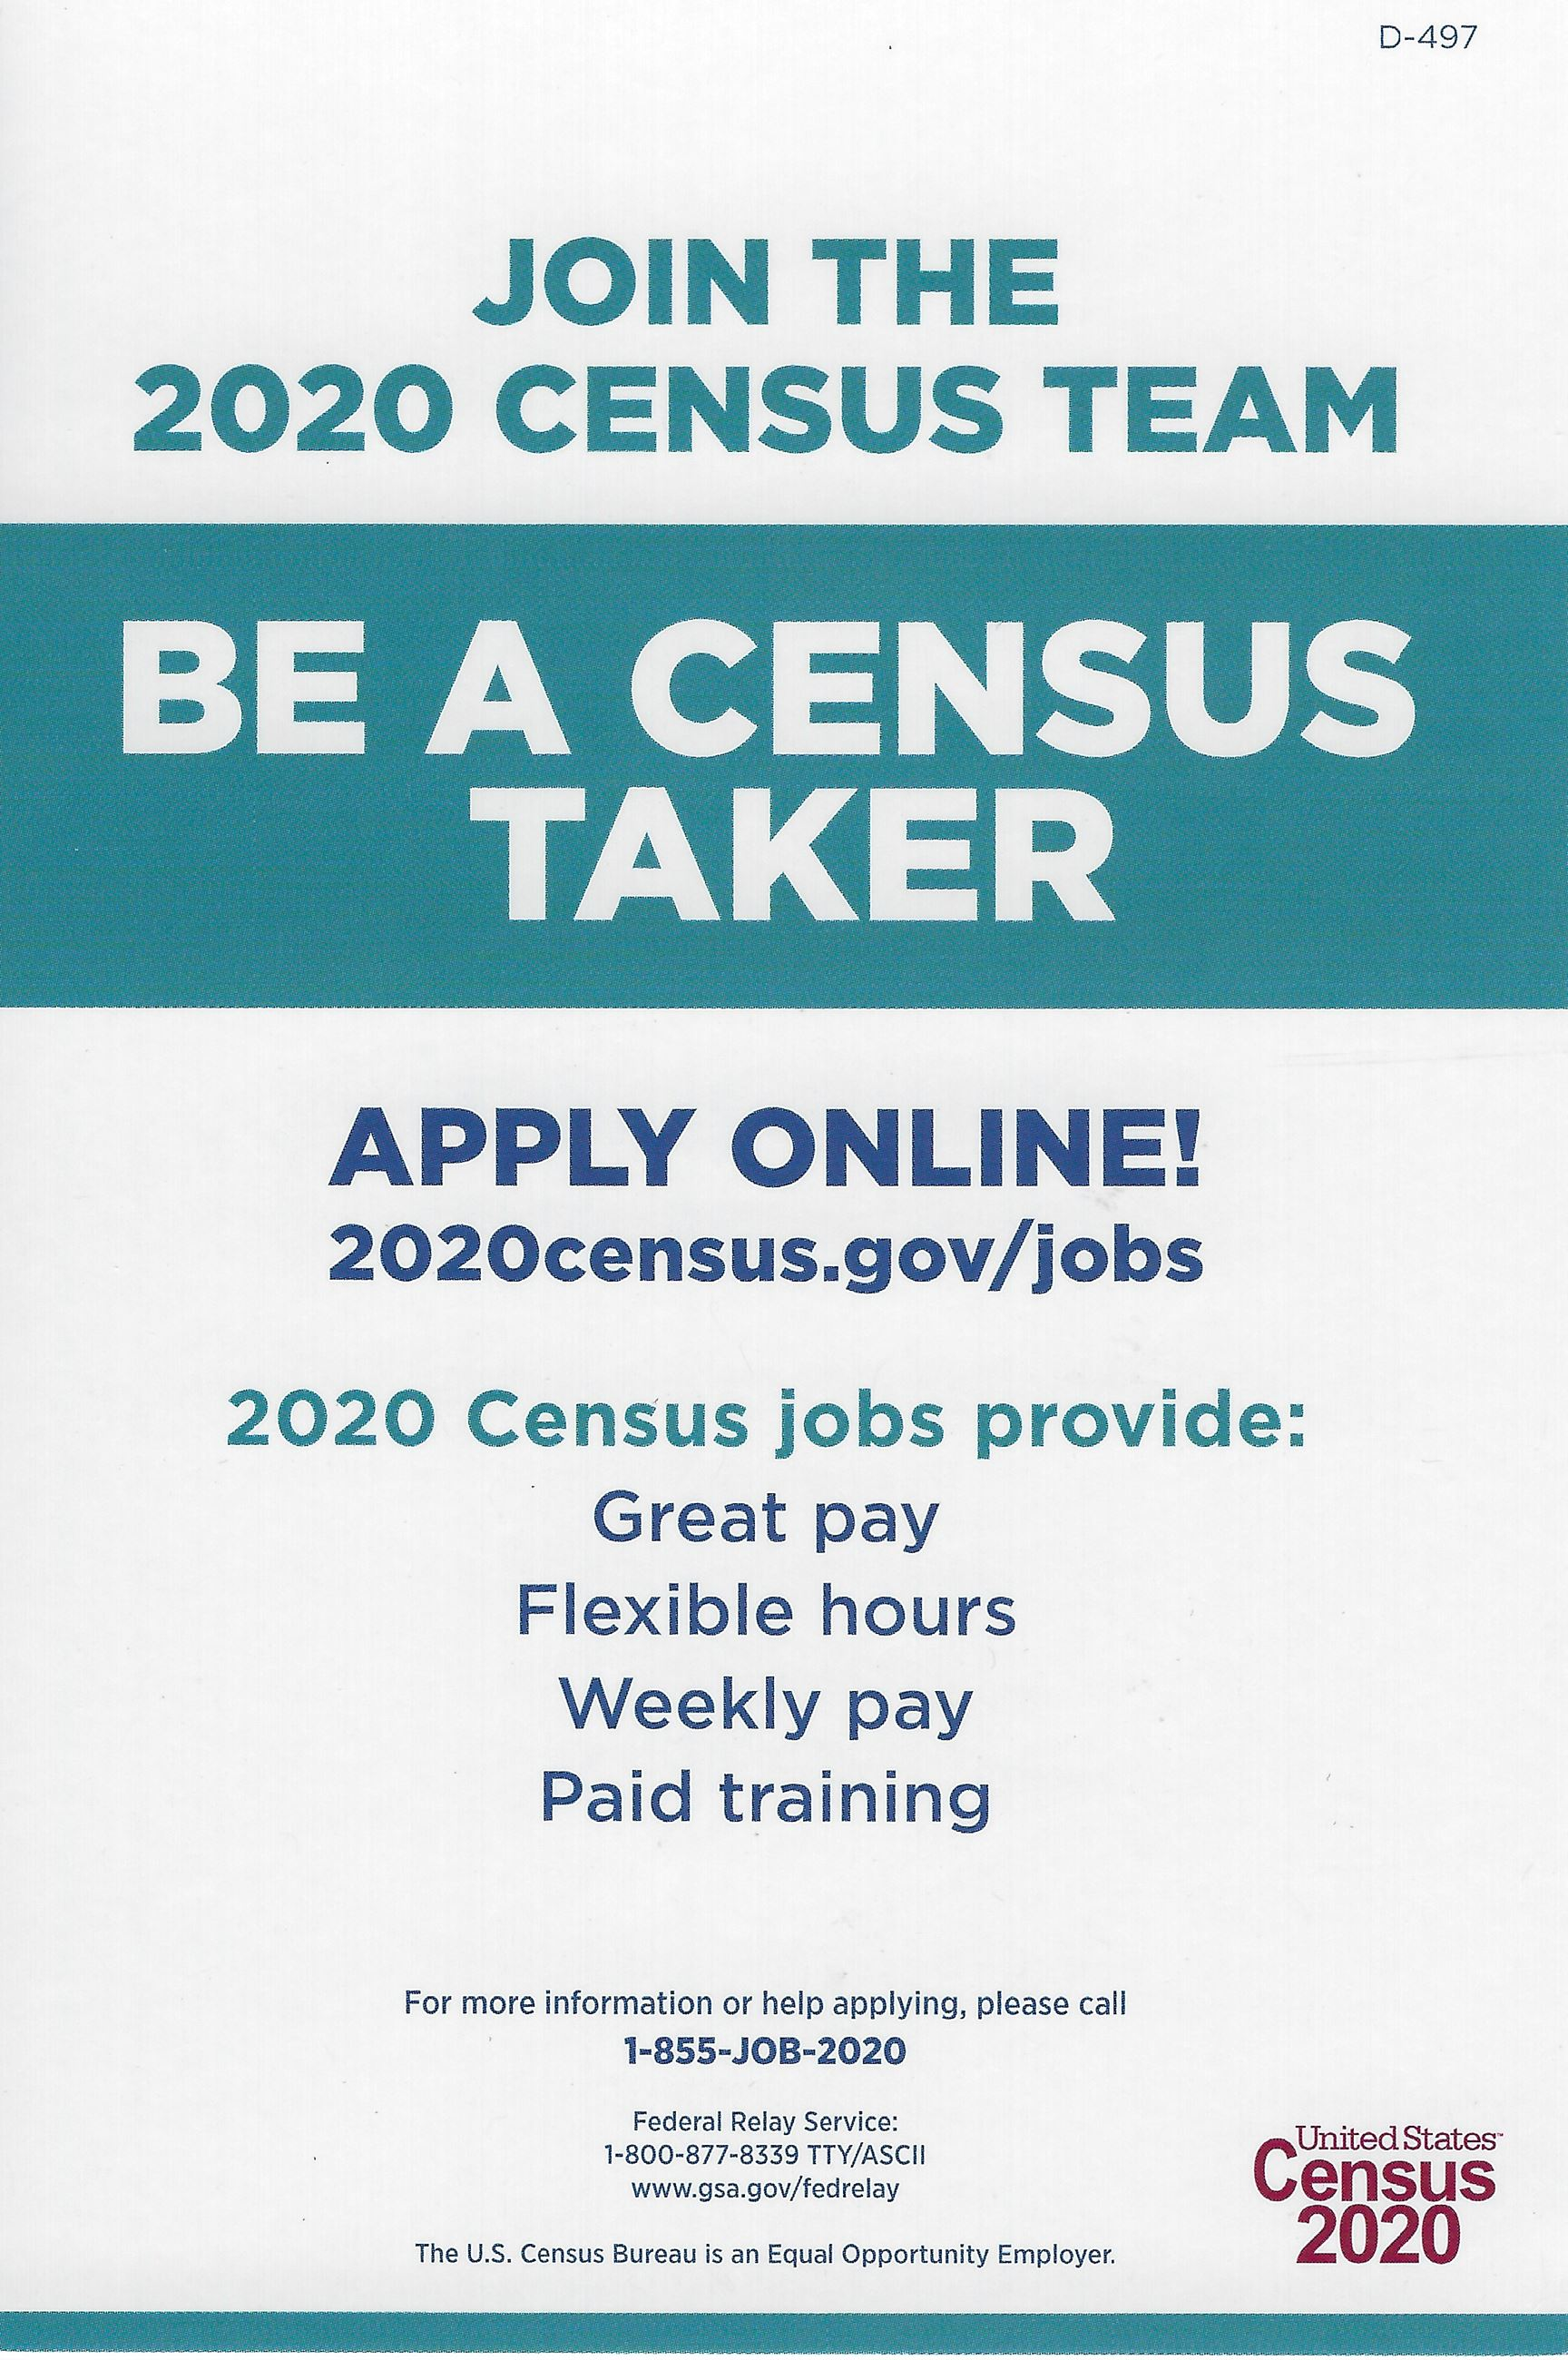 Image shows join the 2020 Census Team by calling 1-855-JOB-2020 or the website 2020Census.com/jobs